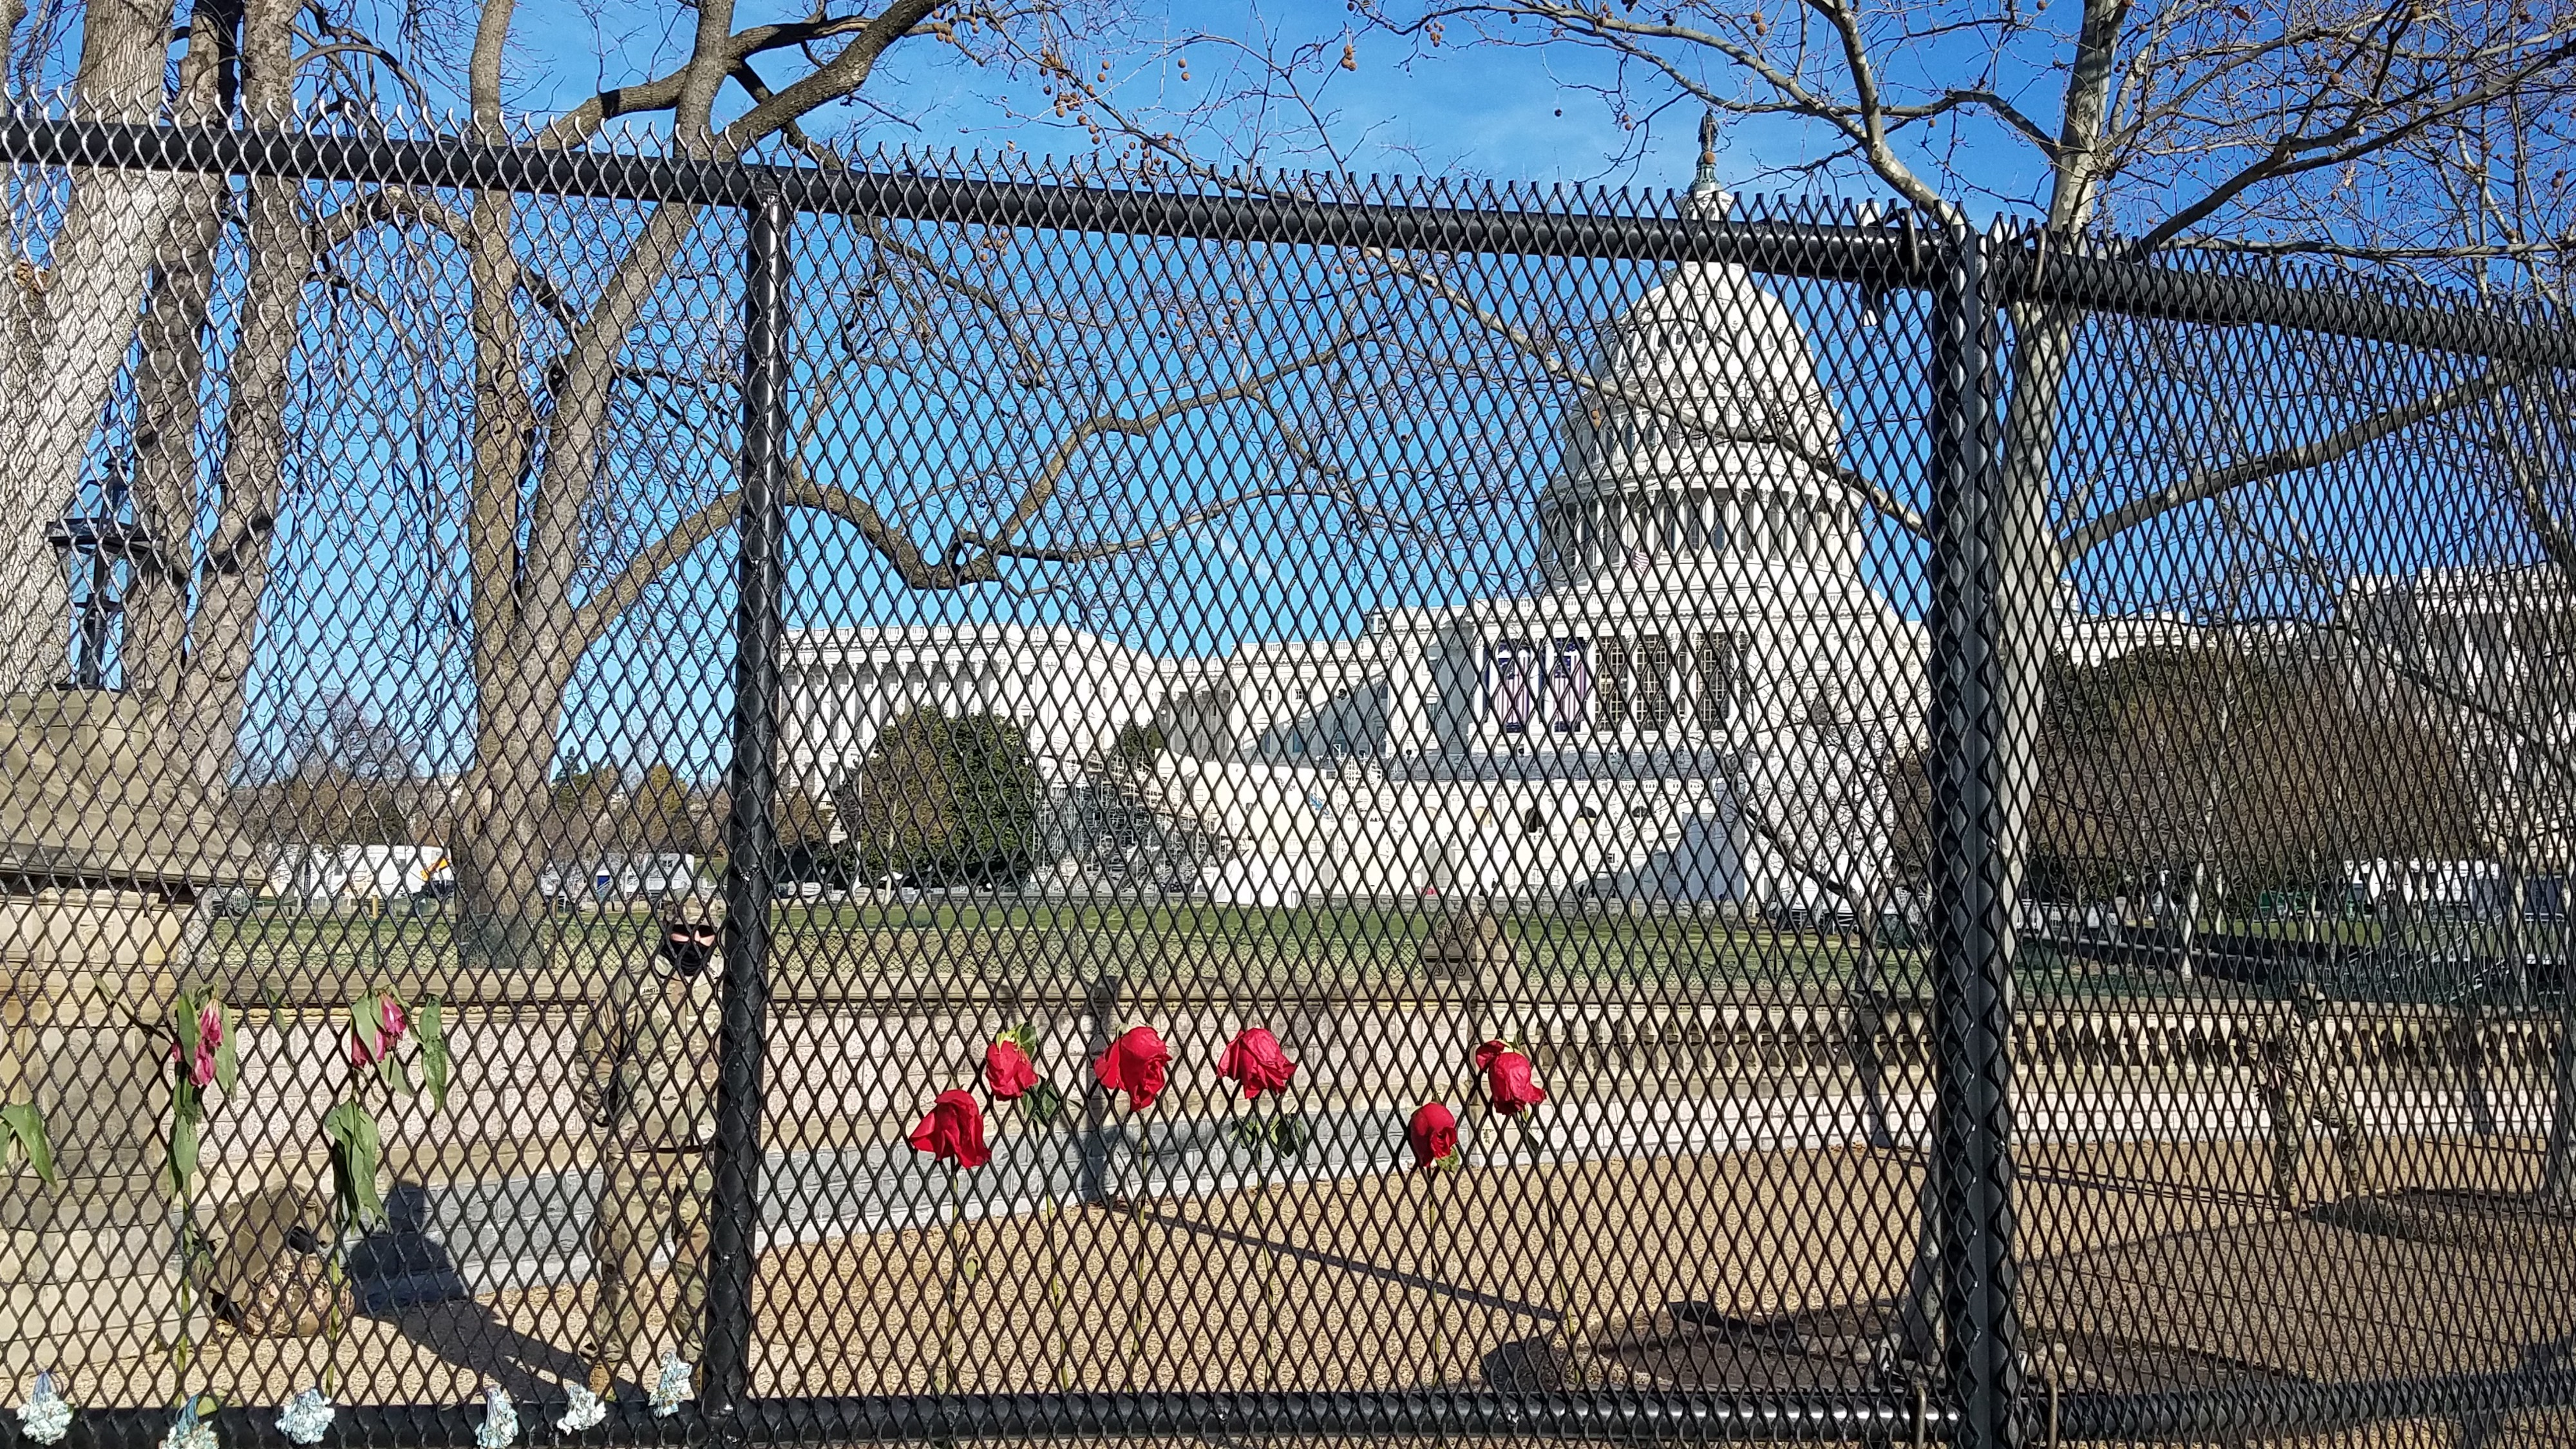 Photo of US Capitol, flag at half staff with National Guard standing watch behind newly-erected fence adorned with red roses